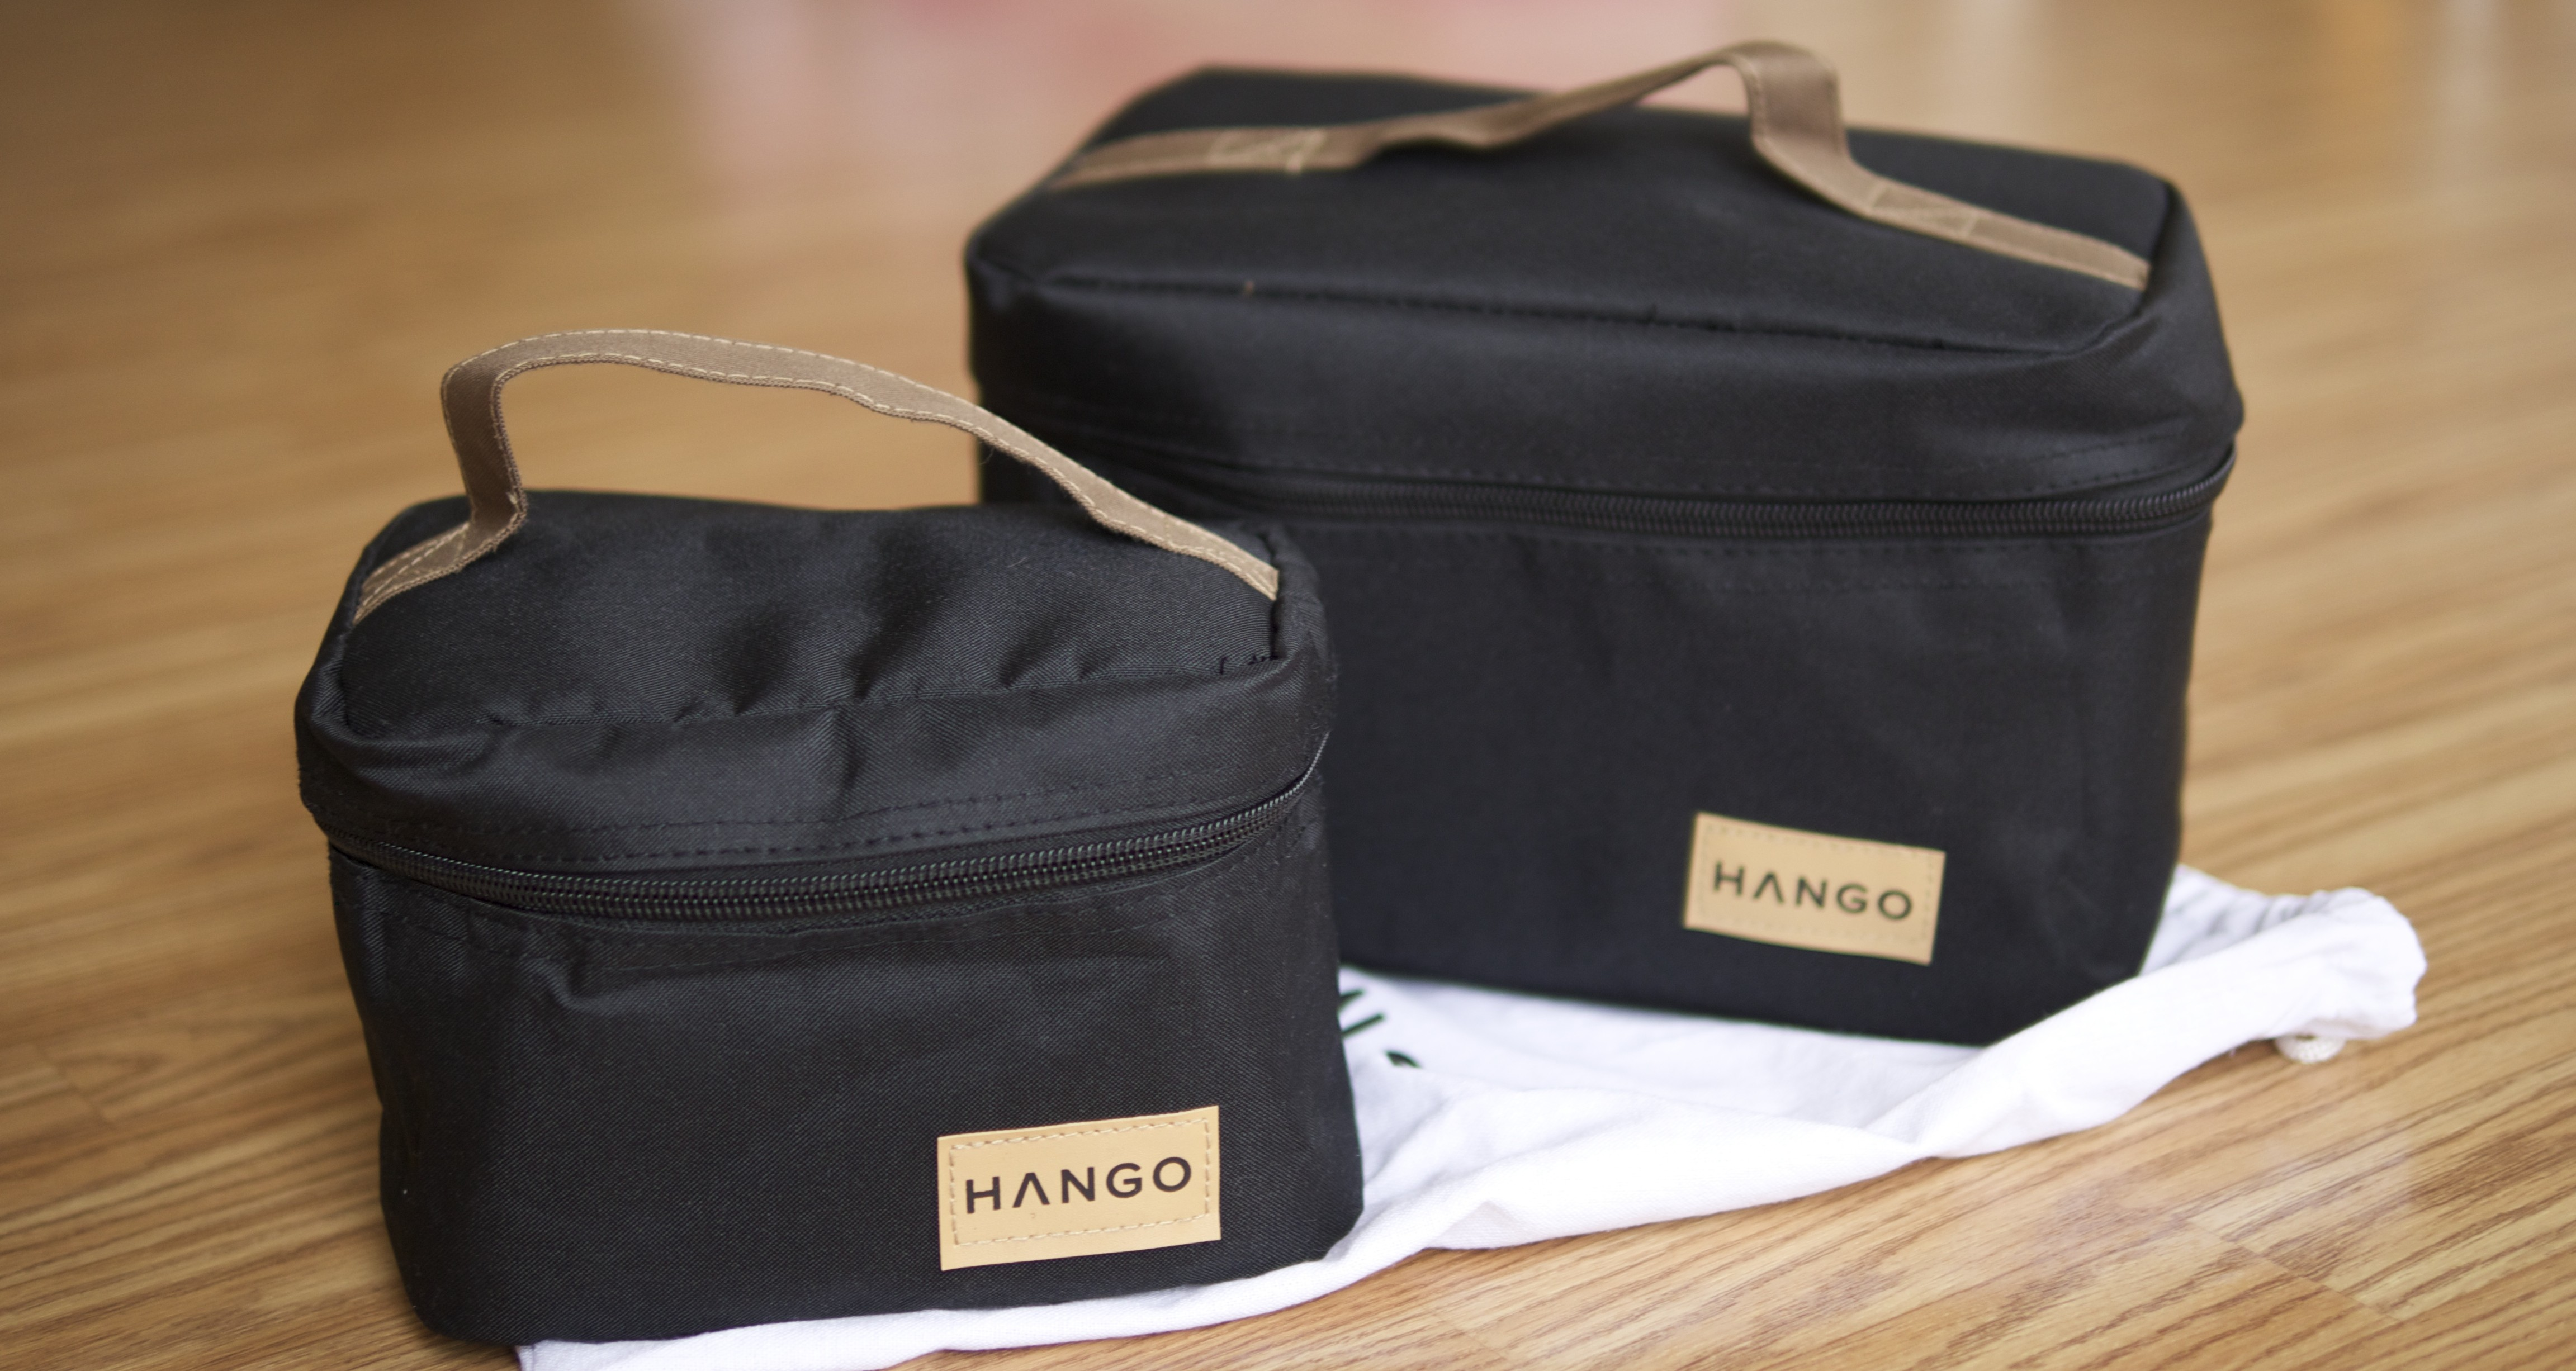 Hango Lunch Box Review